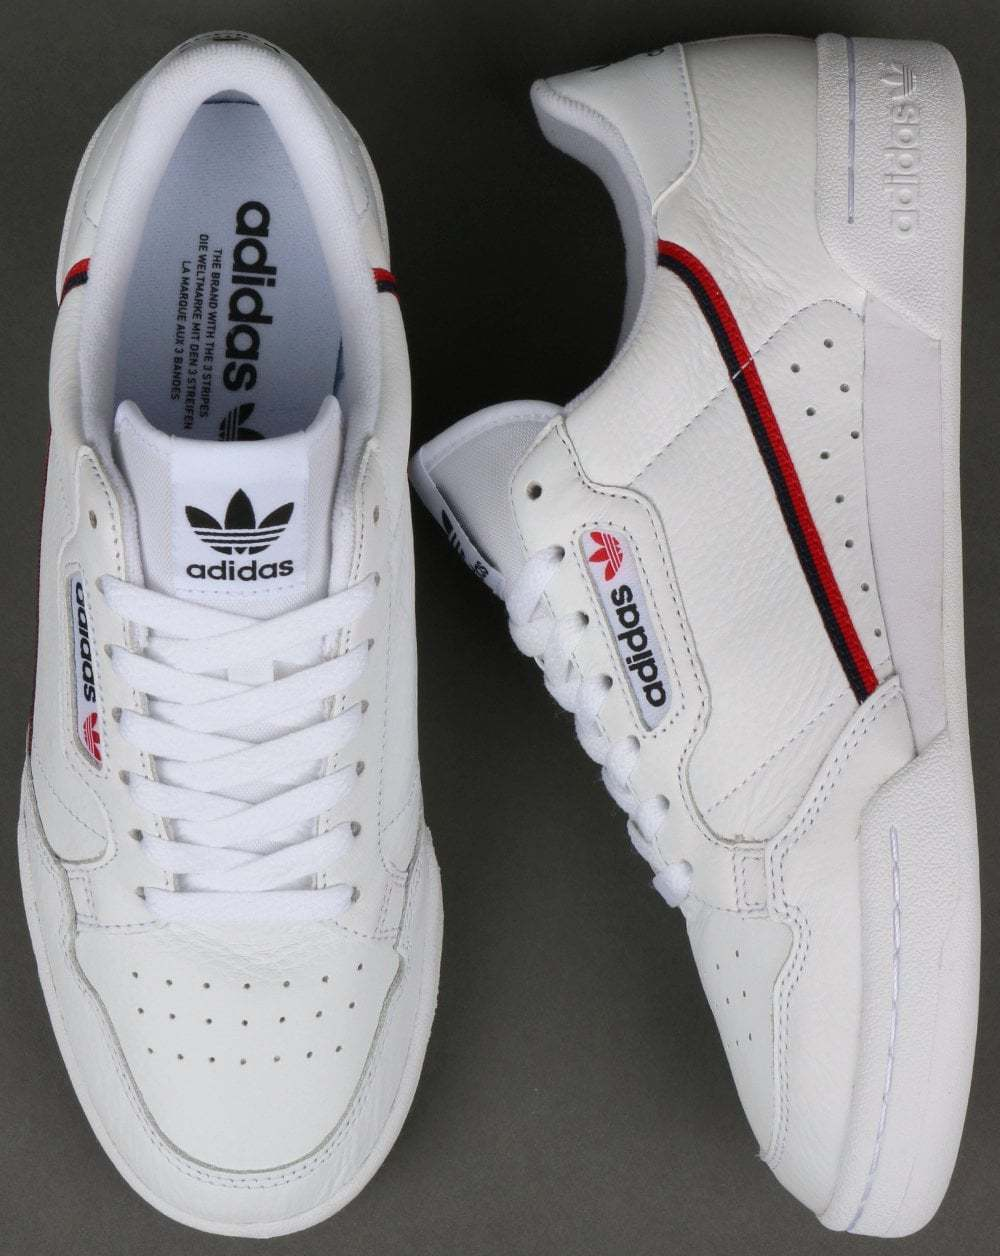 Adidas Originals Originals Originals Continental anni'80-Bianco, Rosso & Navy-NUOVO be74b9